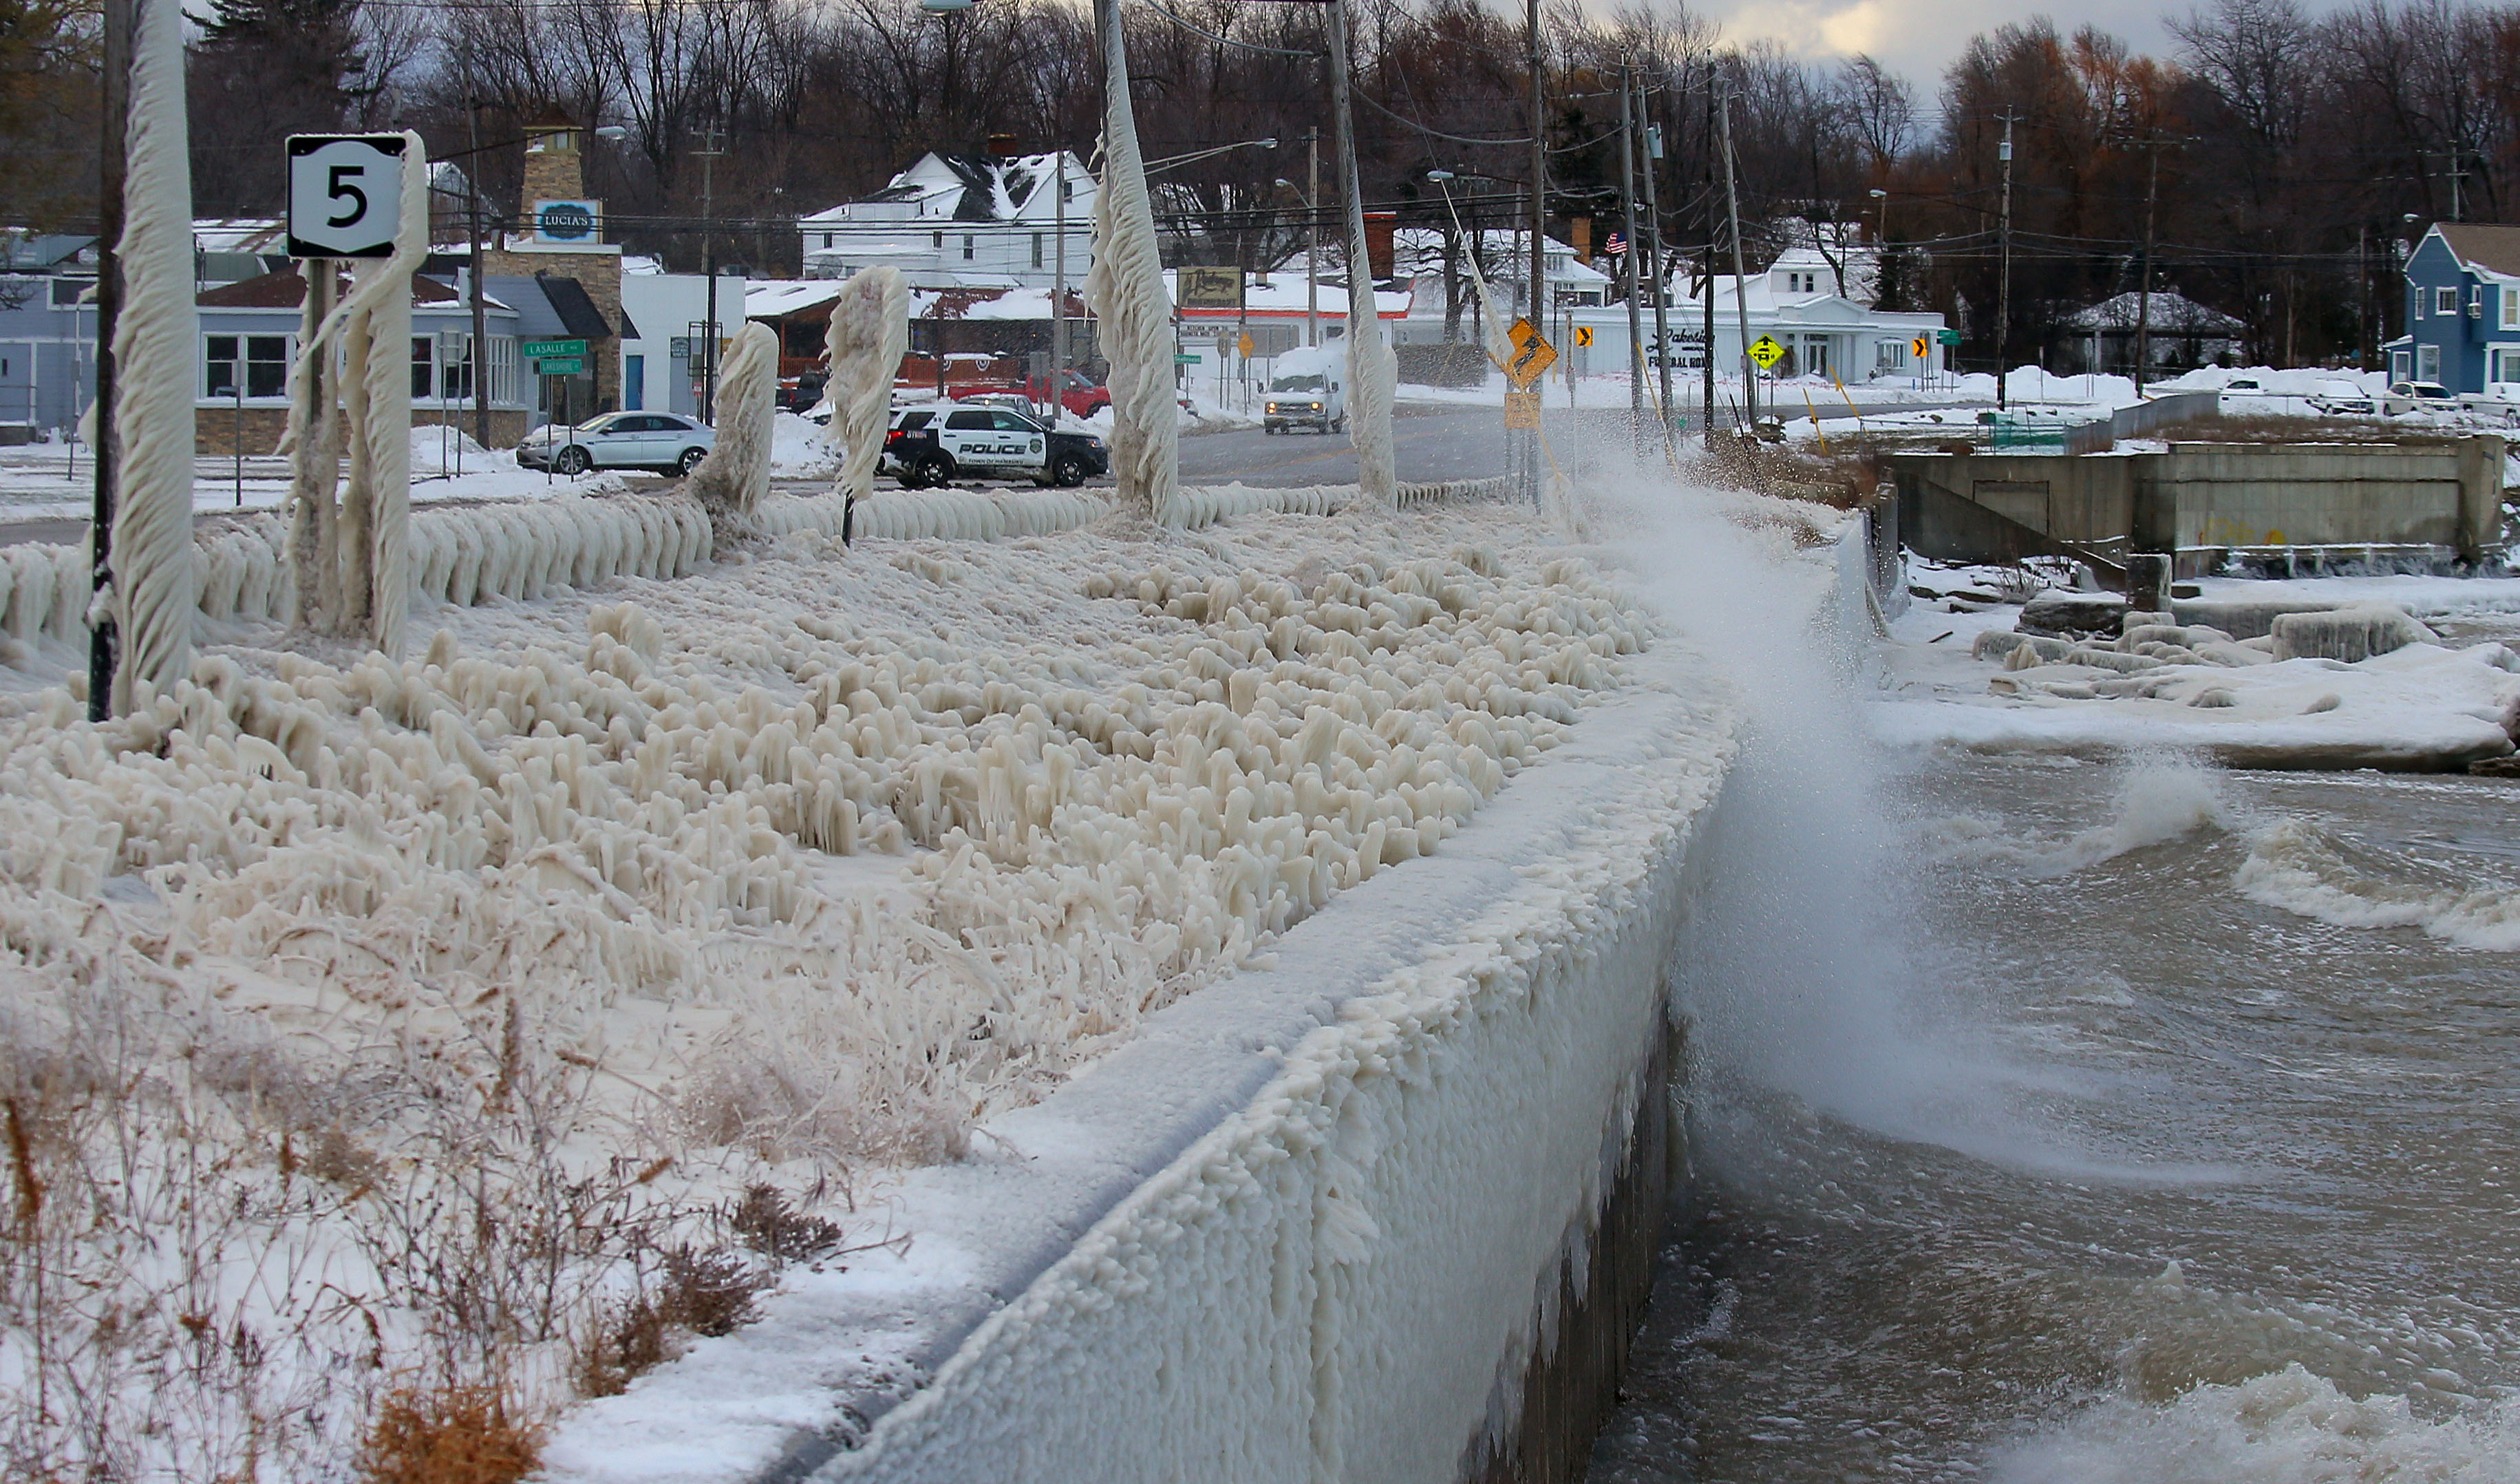 Wind drives lake water up onto Route 5 in Hamburg on Dec. 15. The wind direction in forecast data Monday was Don Paul's first clue that we might be due for lake-effect snow this week. (John Hickey/News file photo)